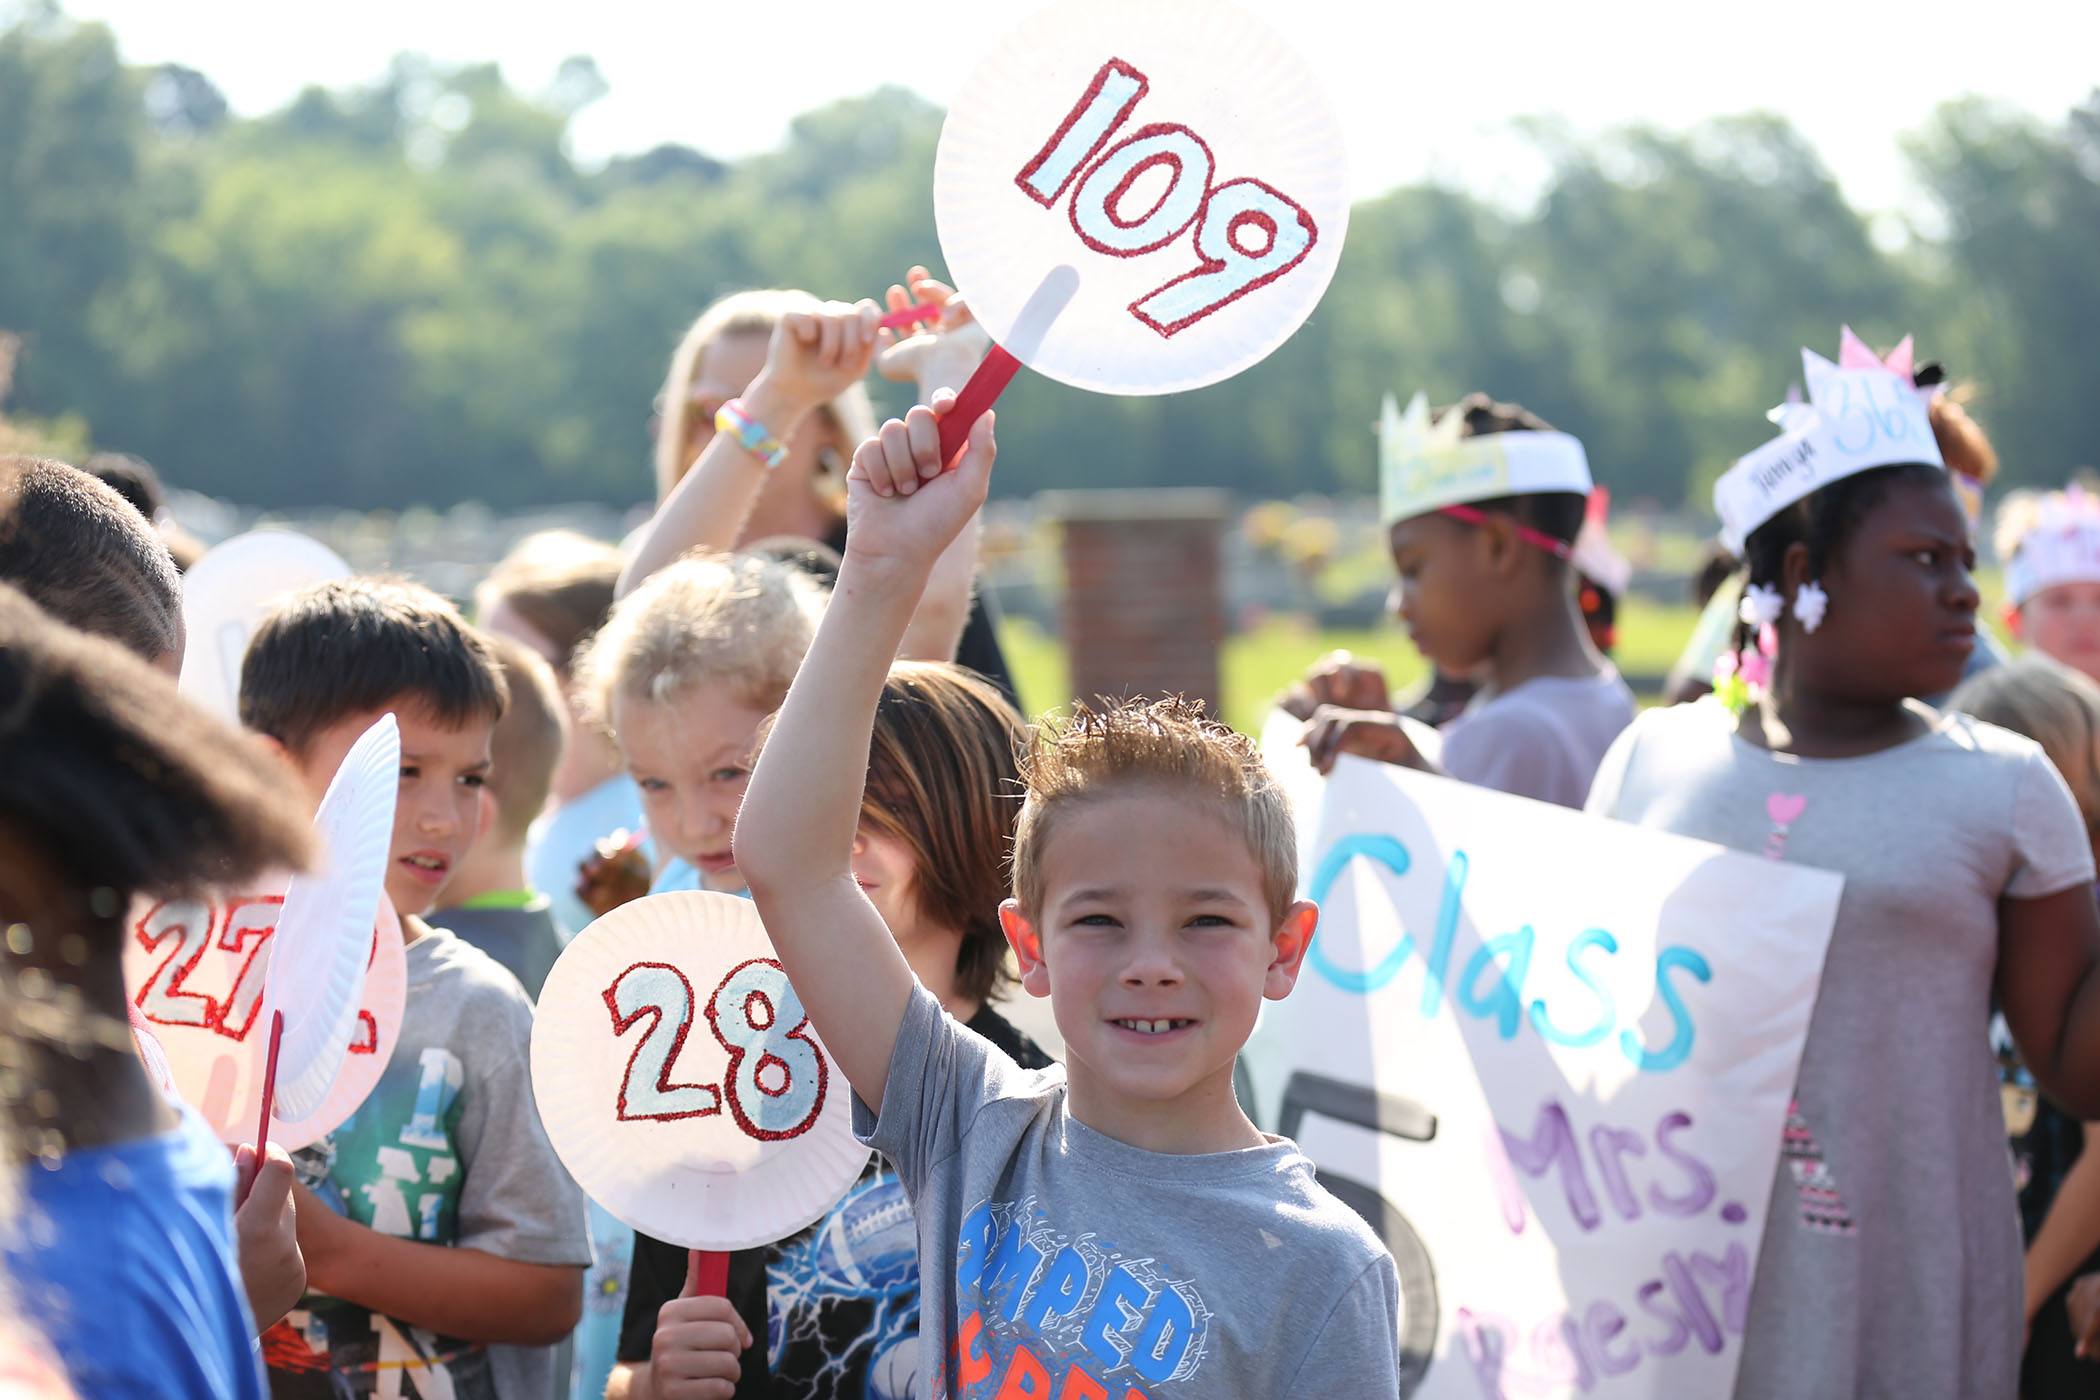 Student holds up a sign announcing that he read 109 books this year.